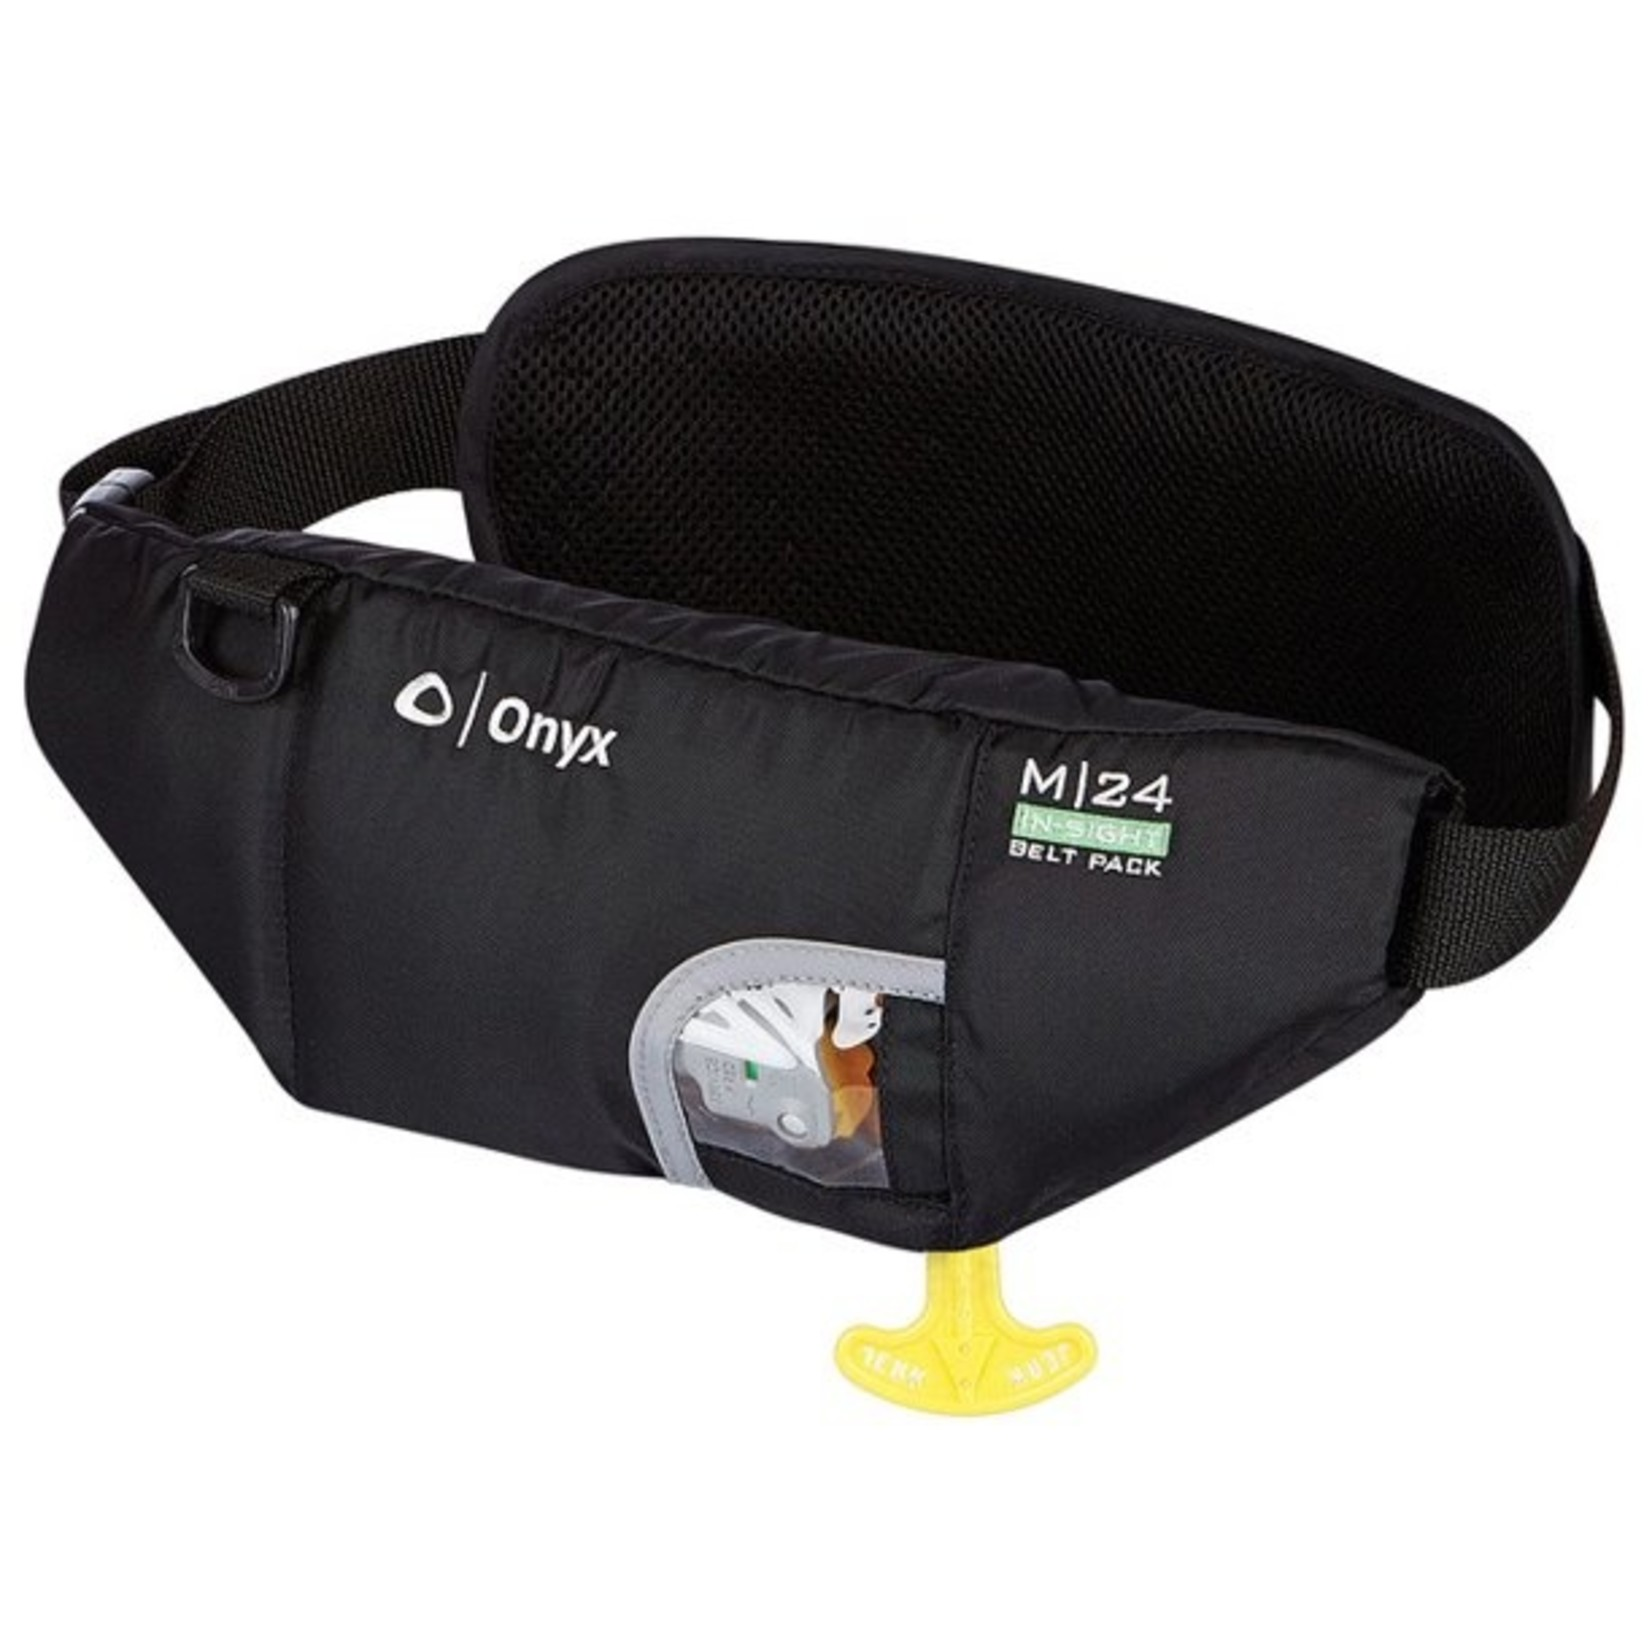 NORTHERN BOARDS M-24 MANUAL INFLATABLE BELT PFD